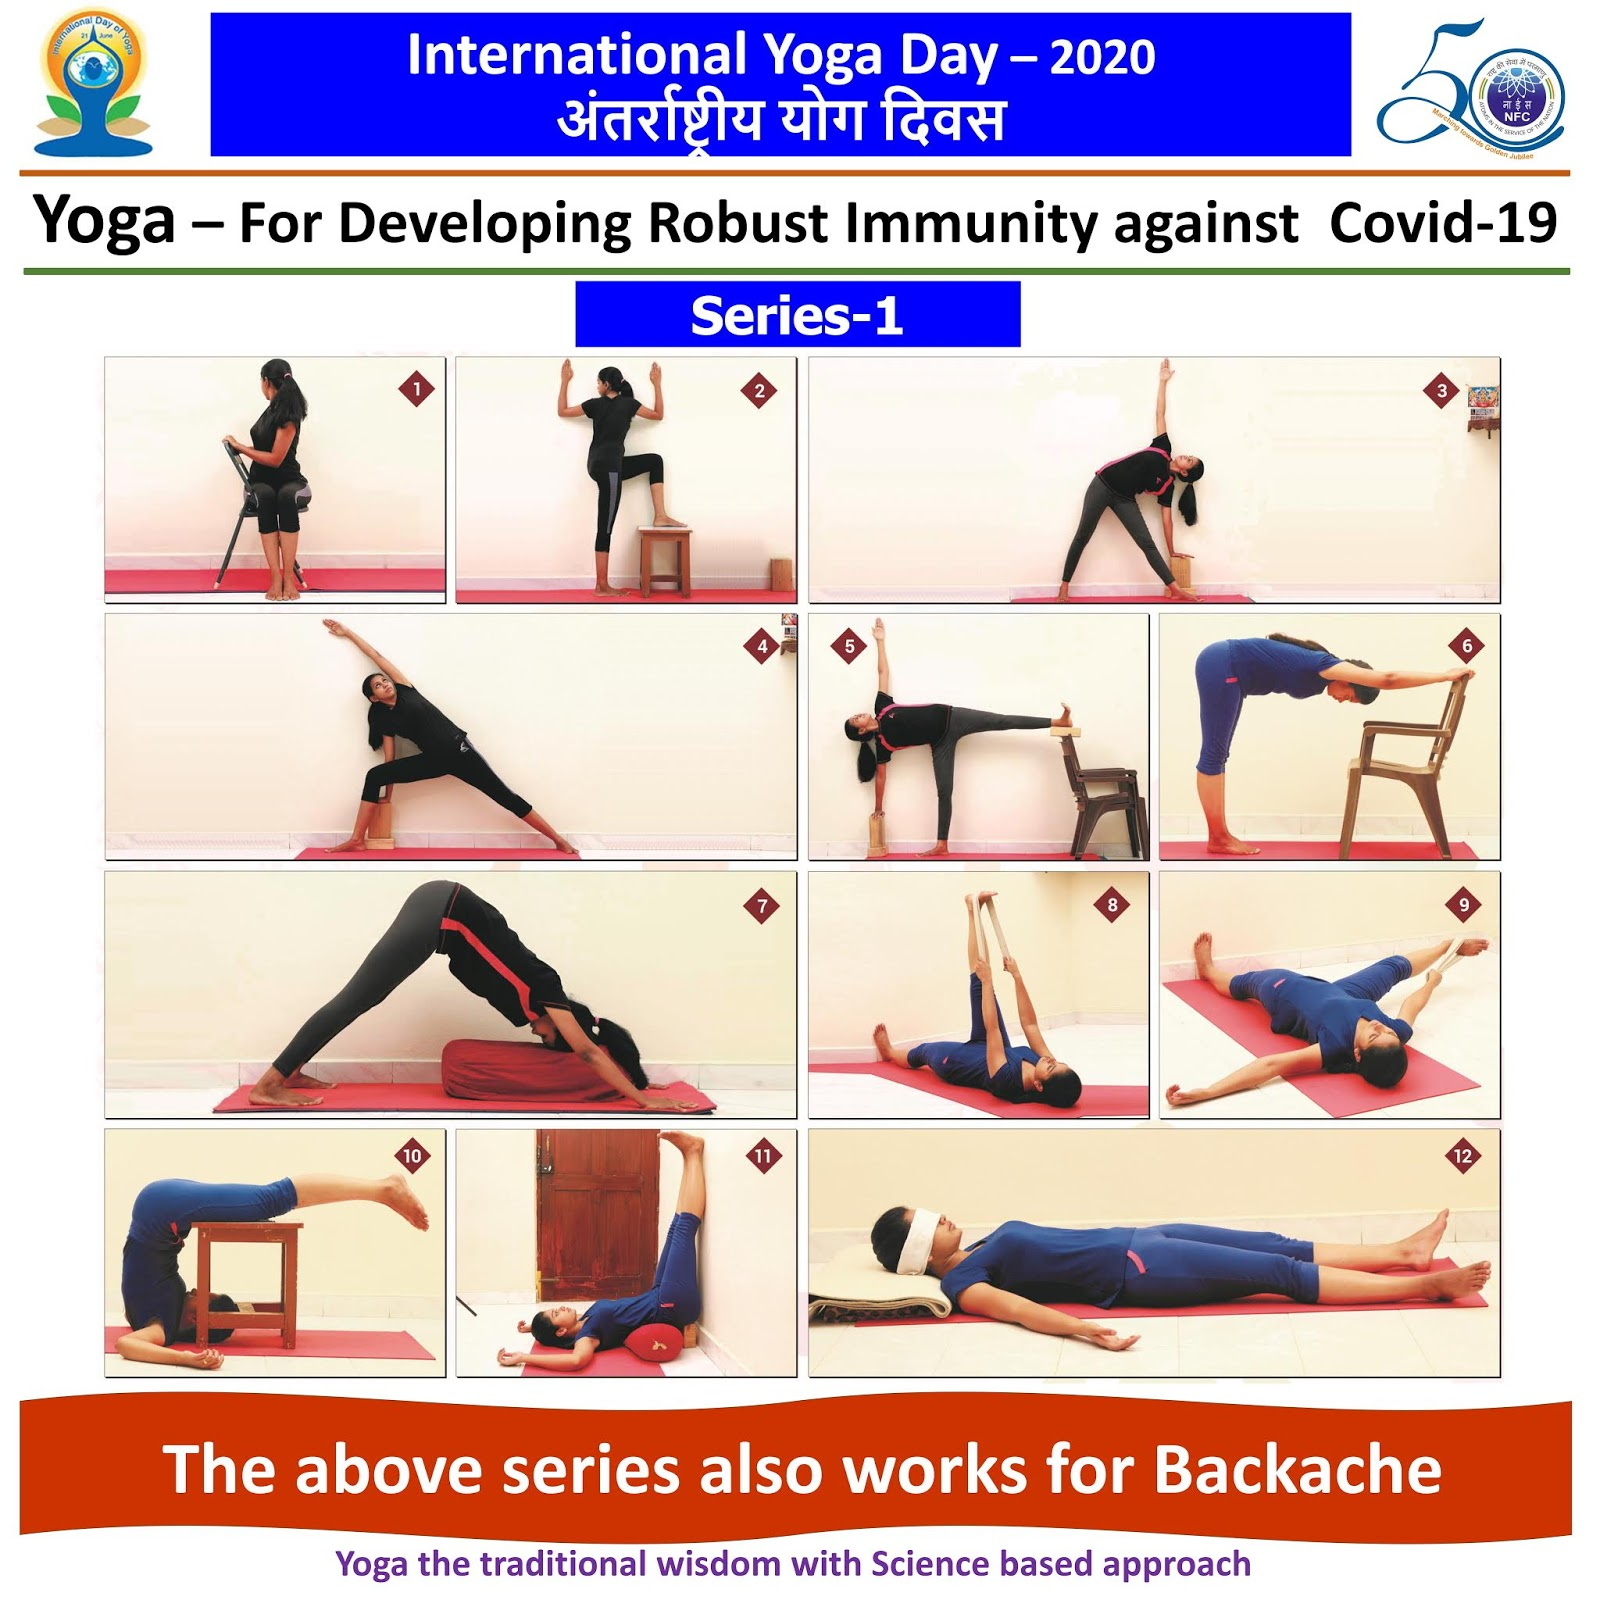 Happy International Yoga Day ... This series also works for Backache